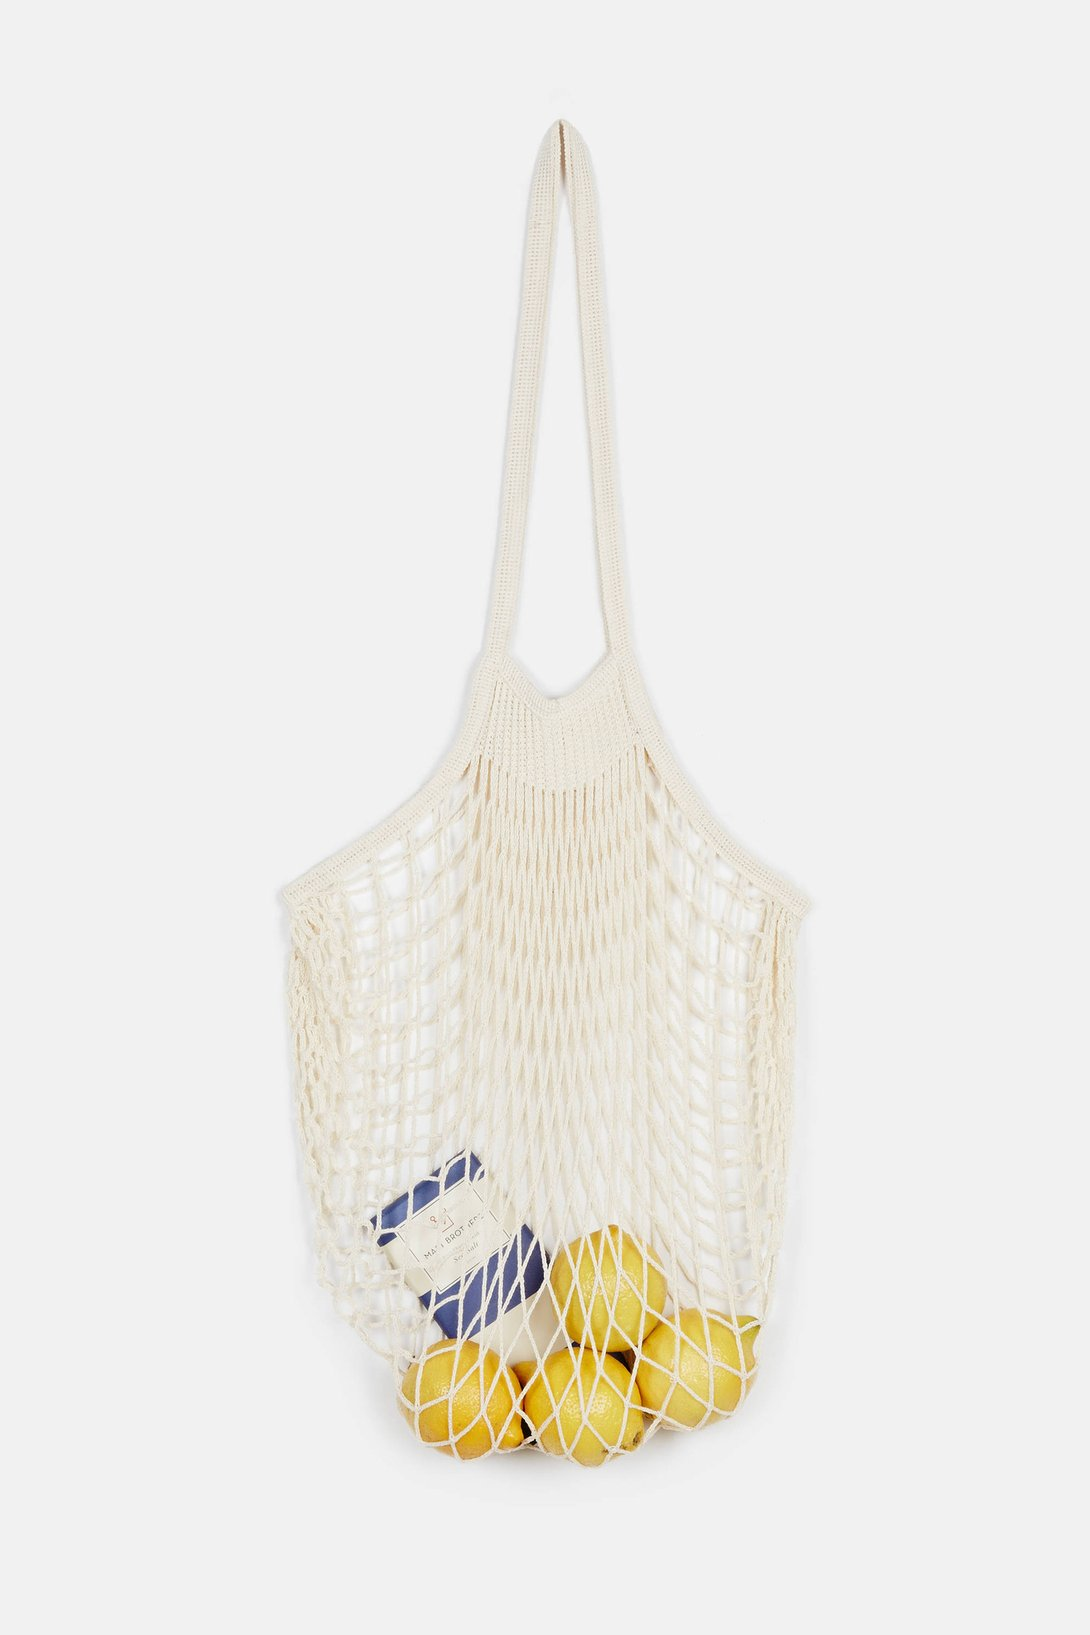 This is the OG net bag. In fact, you can't get more classic or authentic than this.  Filt  has been making filet bags in Normandy for generations and they come in every color under the sun.